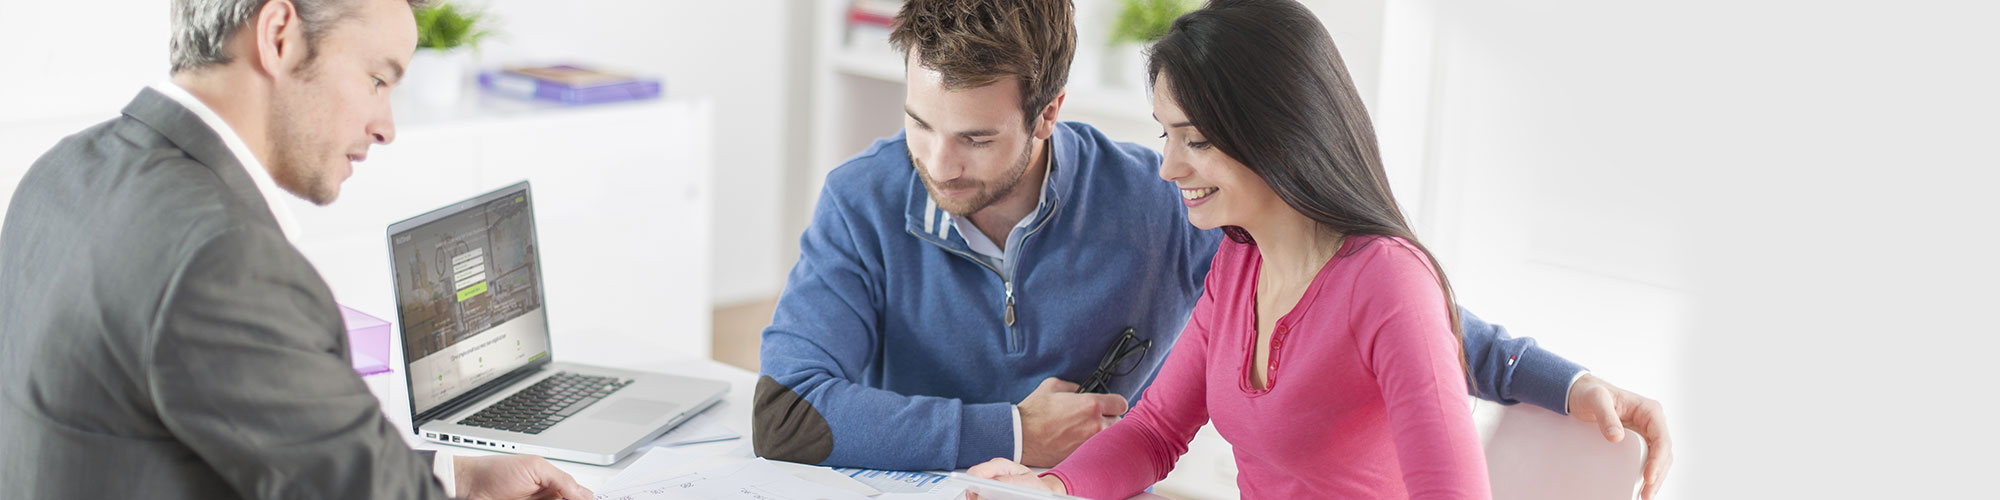 Biz2Credit: Four Tips for Advising Clients Who Want to Start a Business